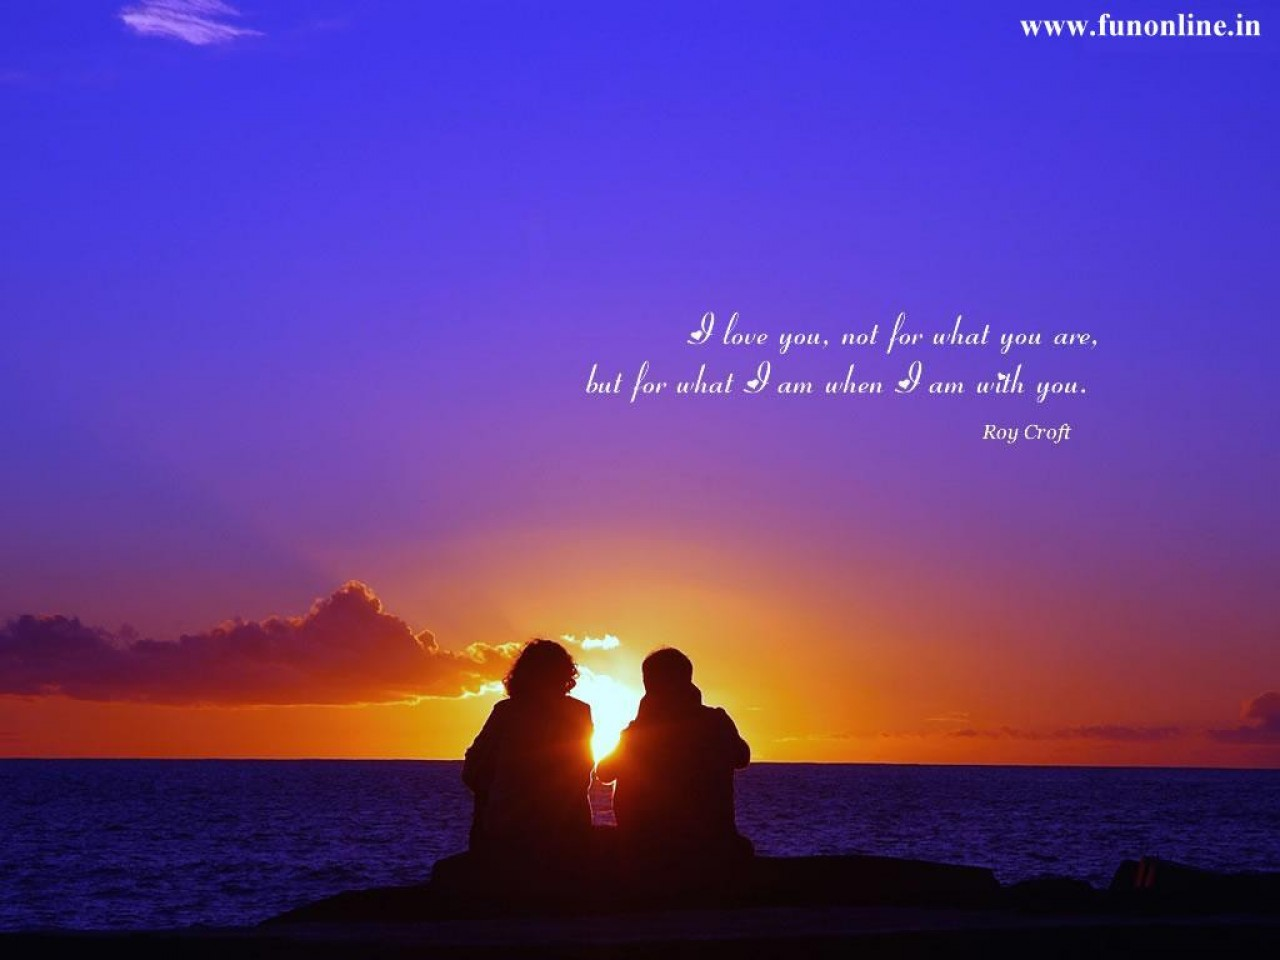 Love Quotes Wallpaper For Desktop : sad quotes wallpapers love quotes wallp[apers sad love ...